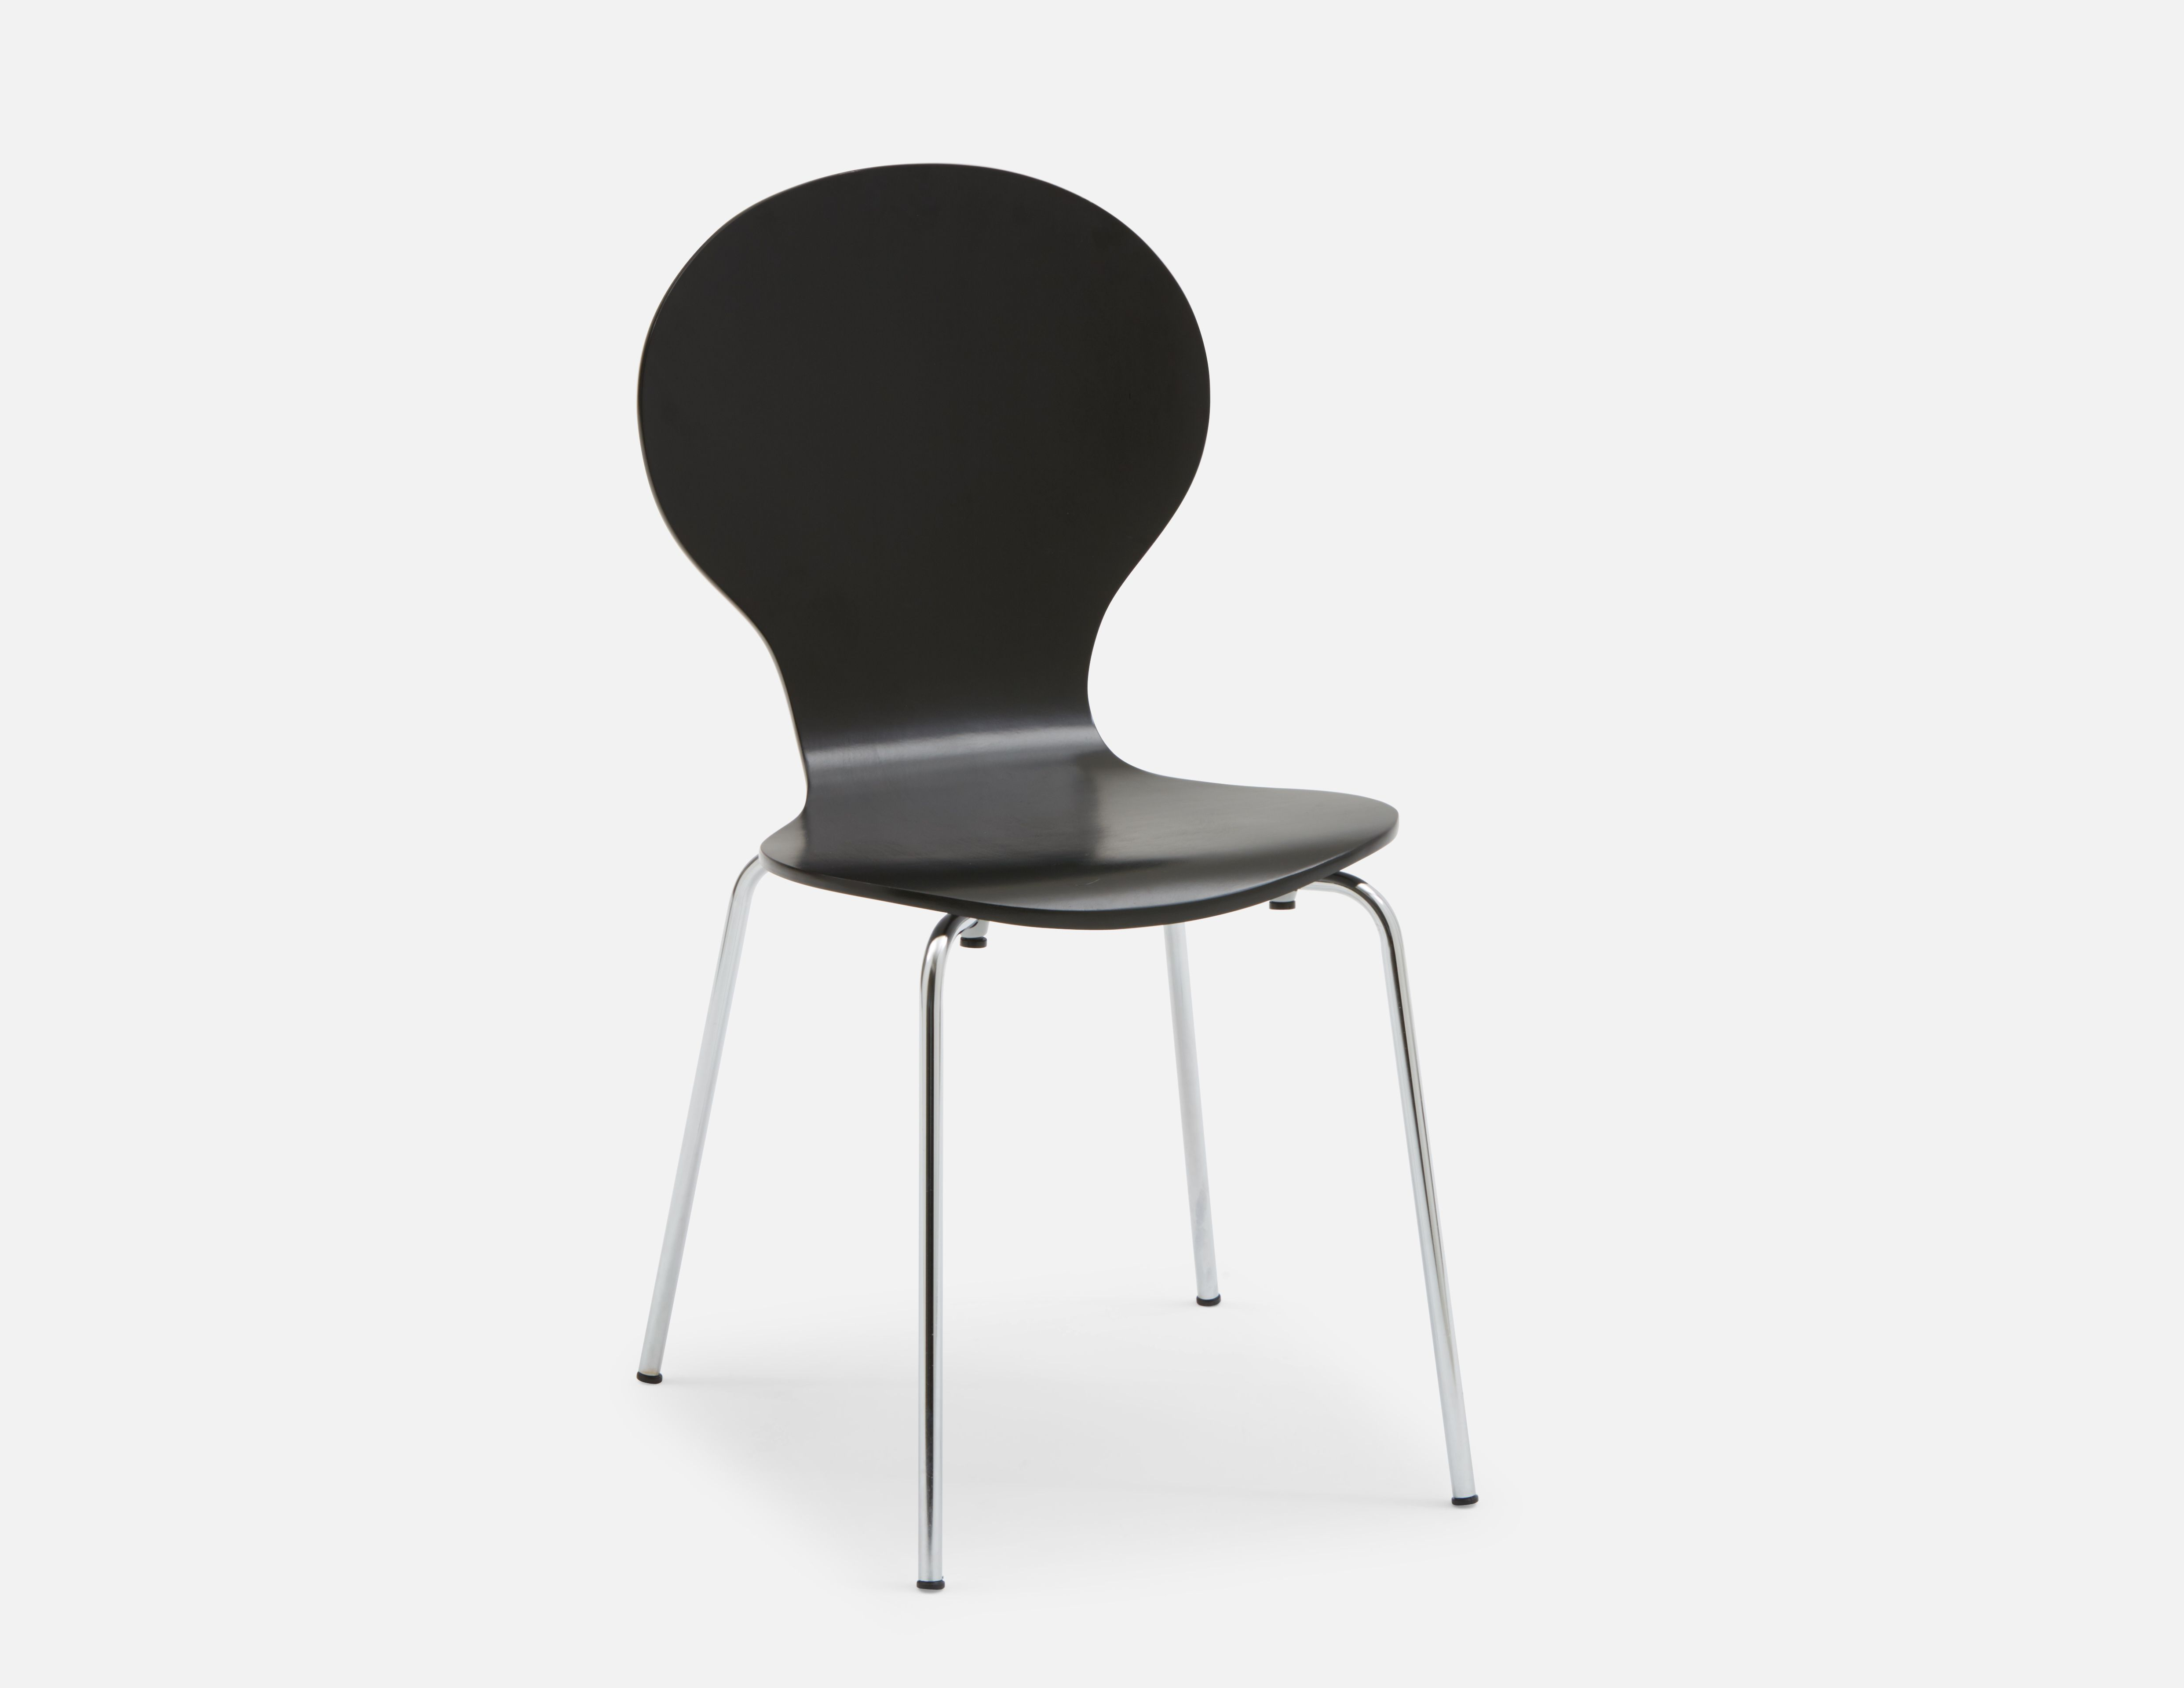 Enjoyable Black Bentwood Chair Structube Bunny In 2019 Products Ncnpc Chair Design For Home Ncnpcorg